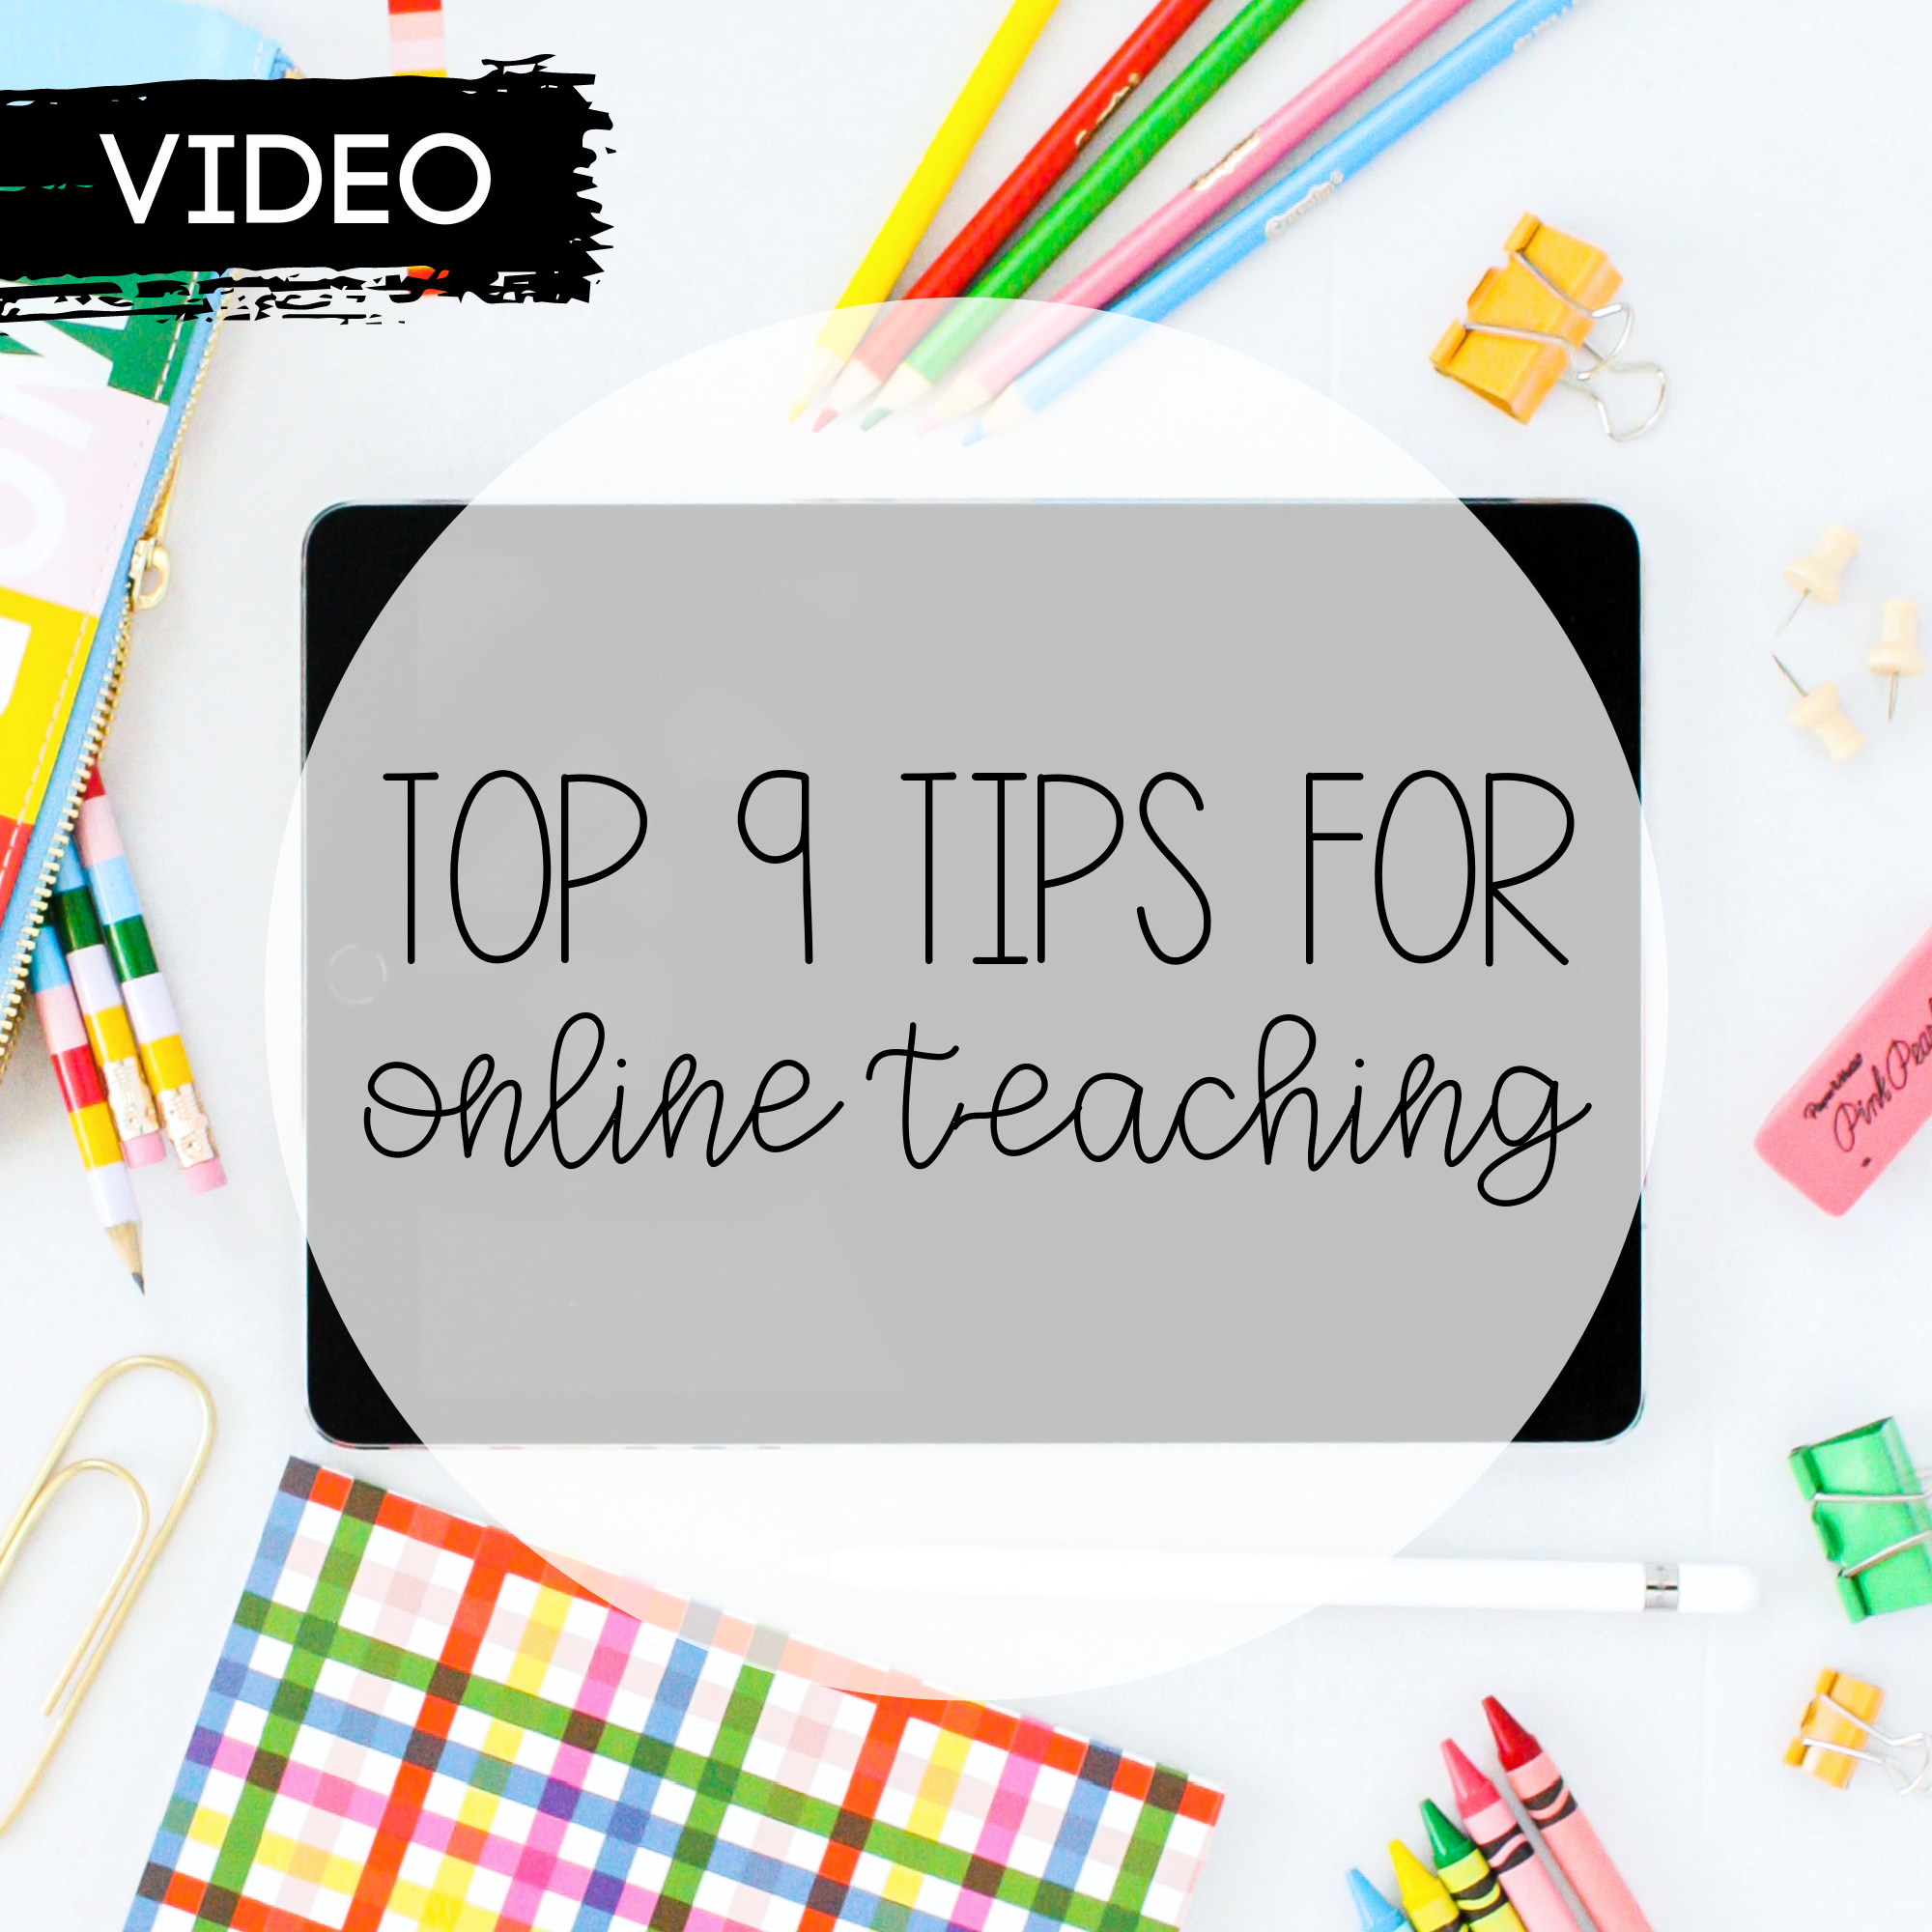 Top 9 Tips for Online Teaching